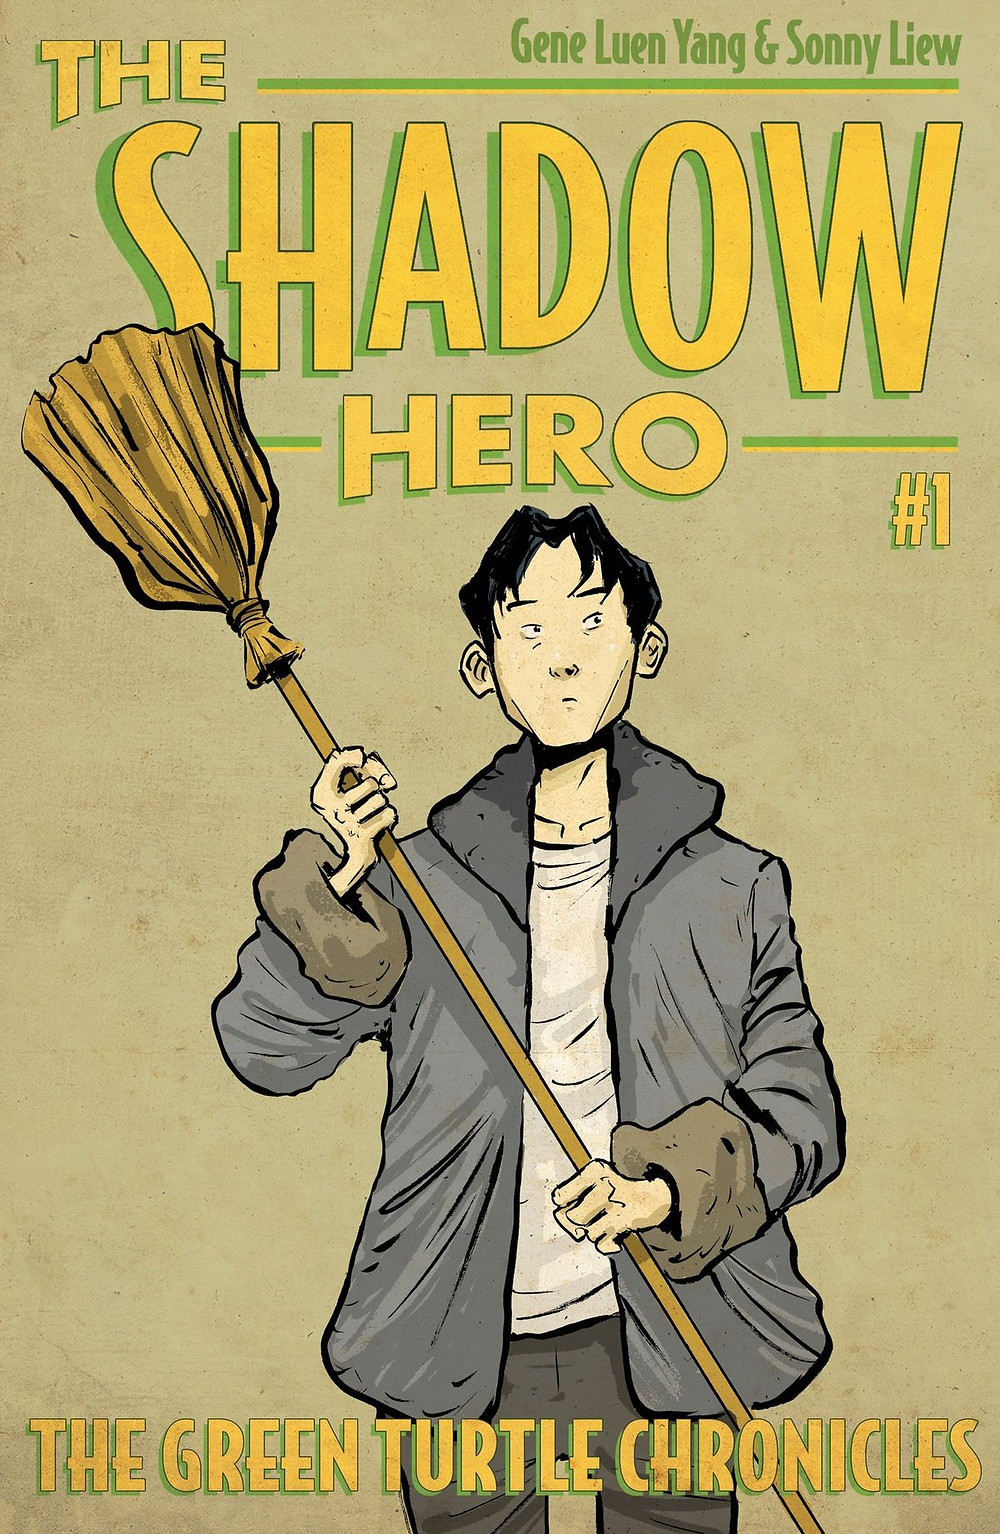 A Chinese boy stands in the center of the cover. He wears a white t-shirt and grey winter jacket. He holds a broom raised above his head.